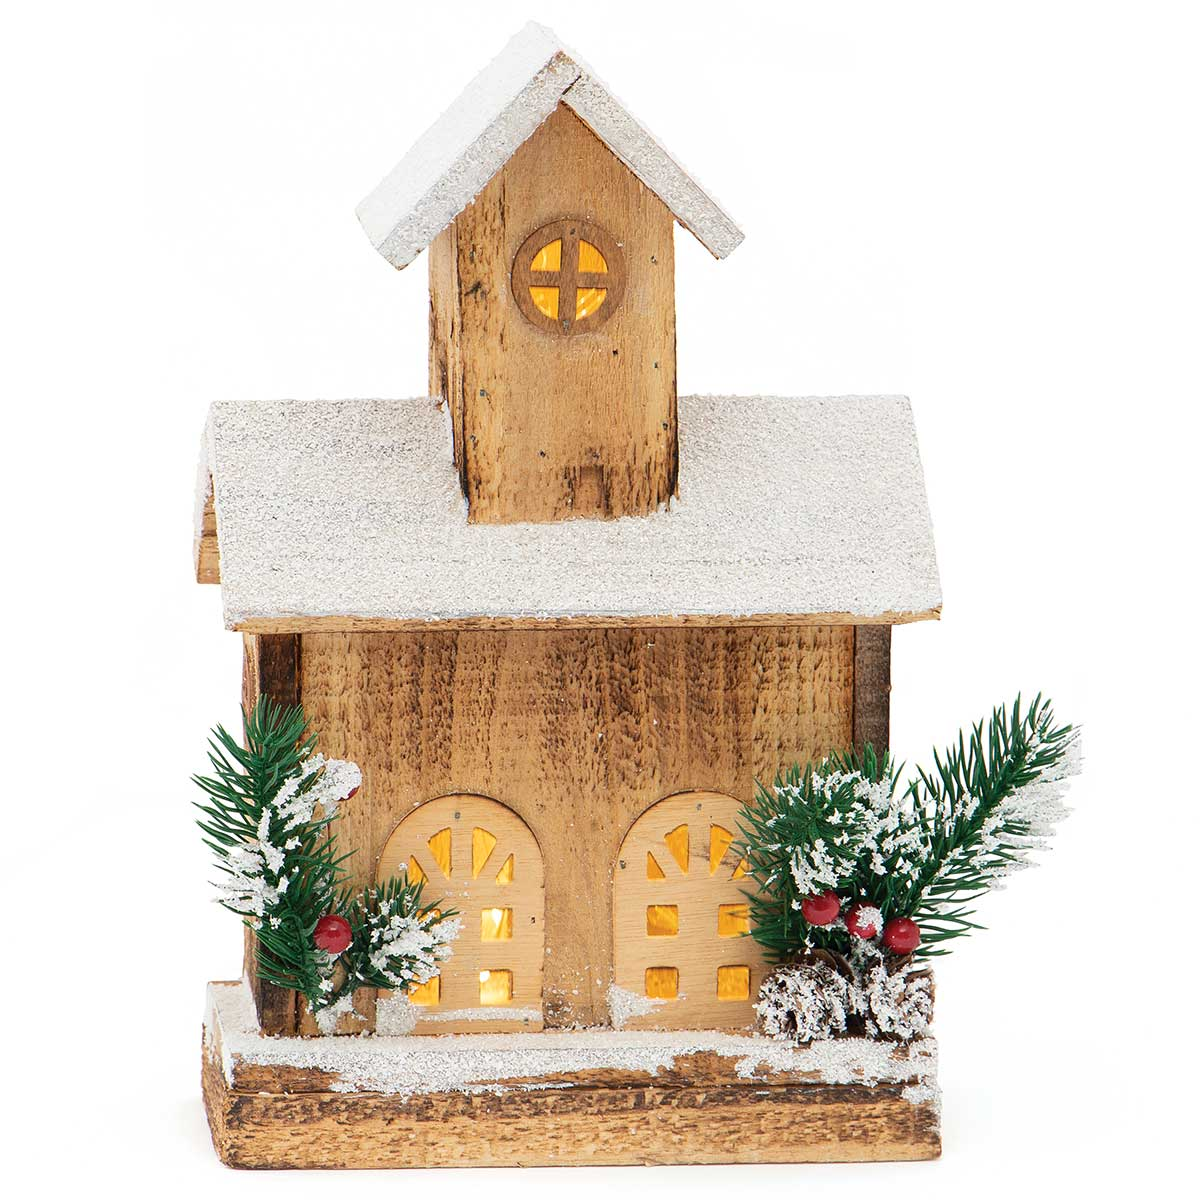 ALPINE WOOD HOUSE WITH SNOW, GLITTER, PINECONES AND